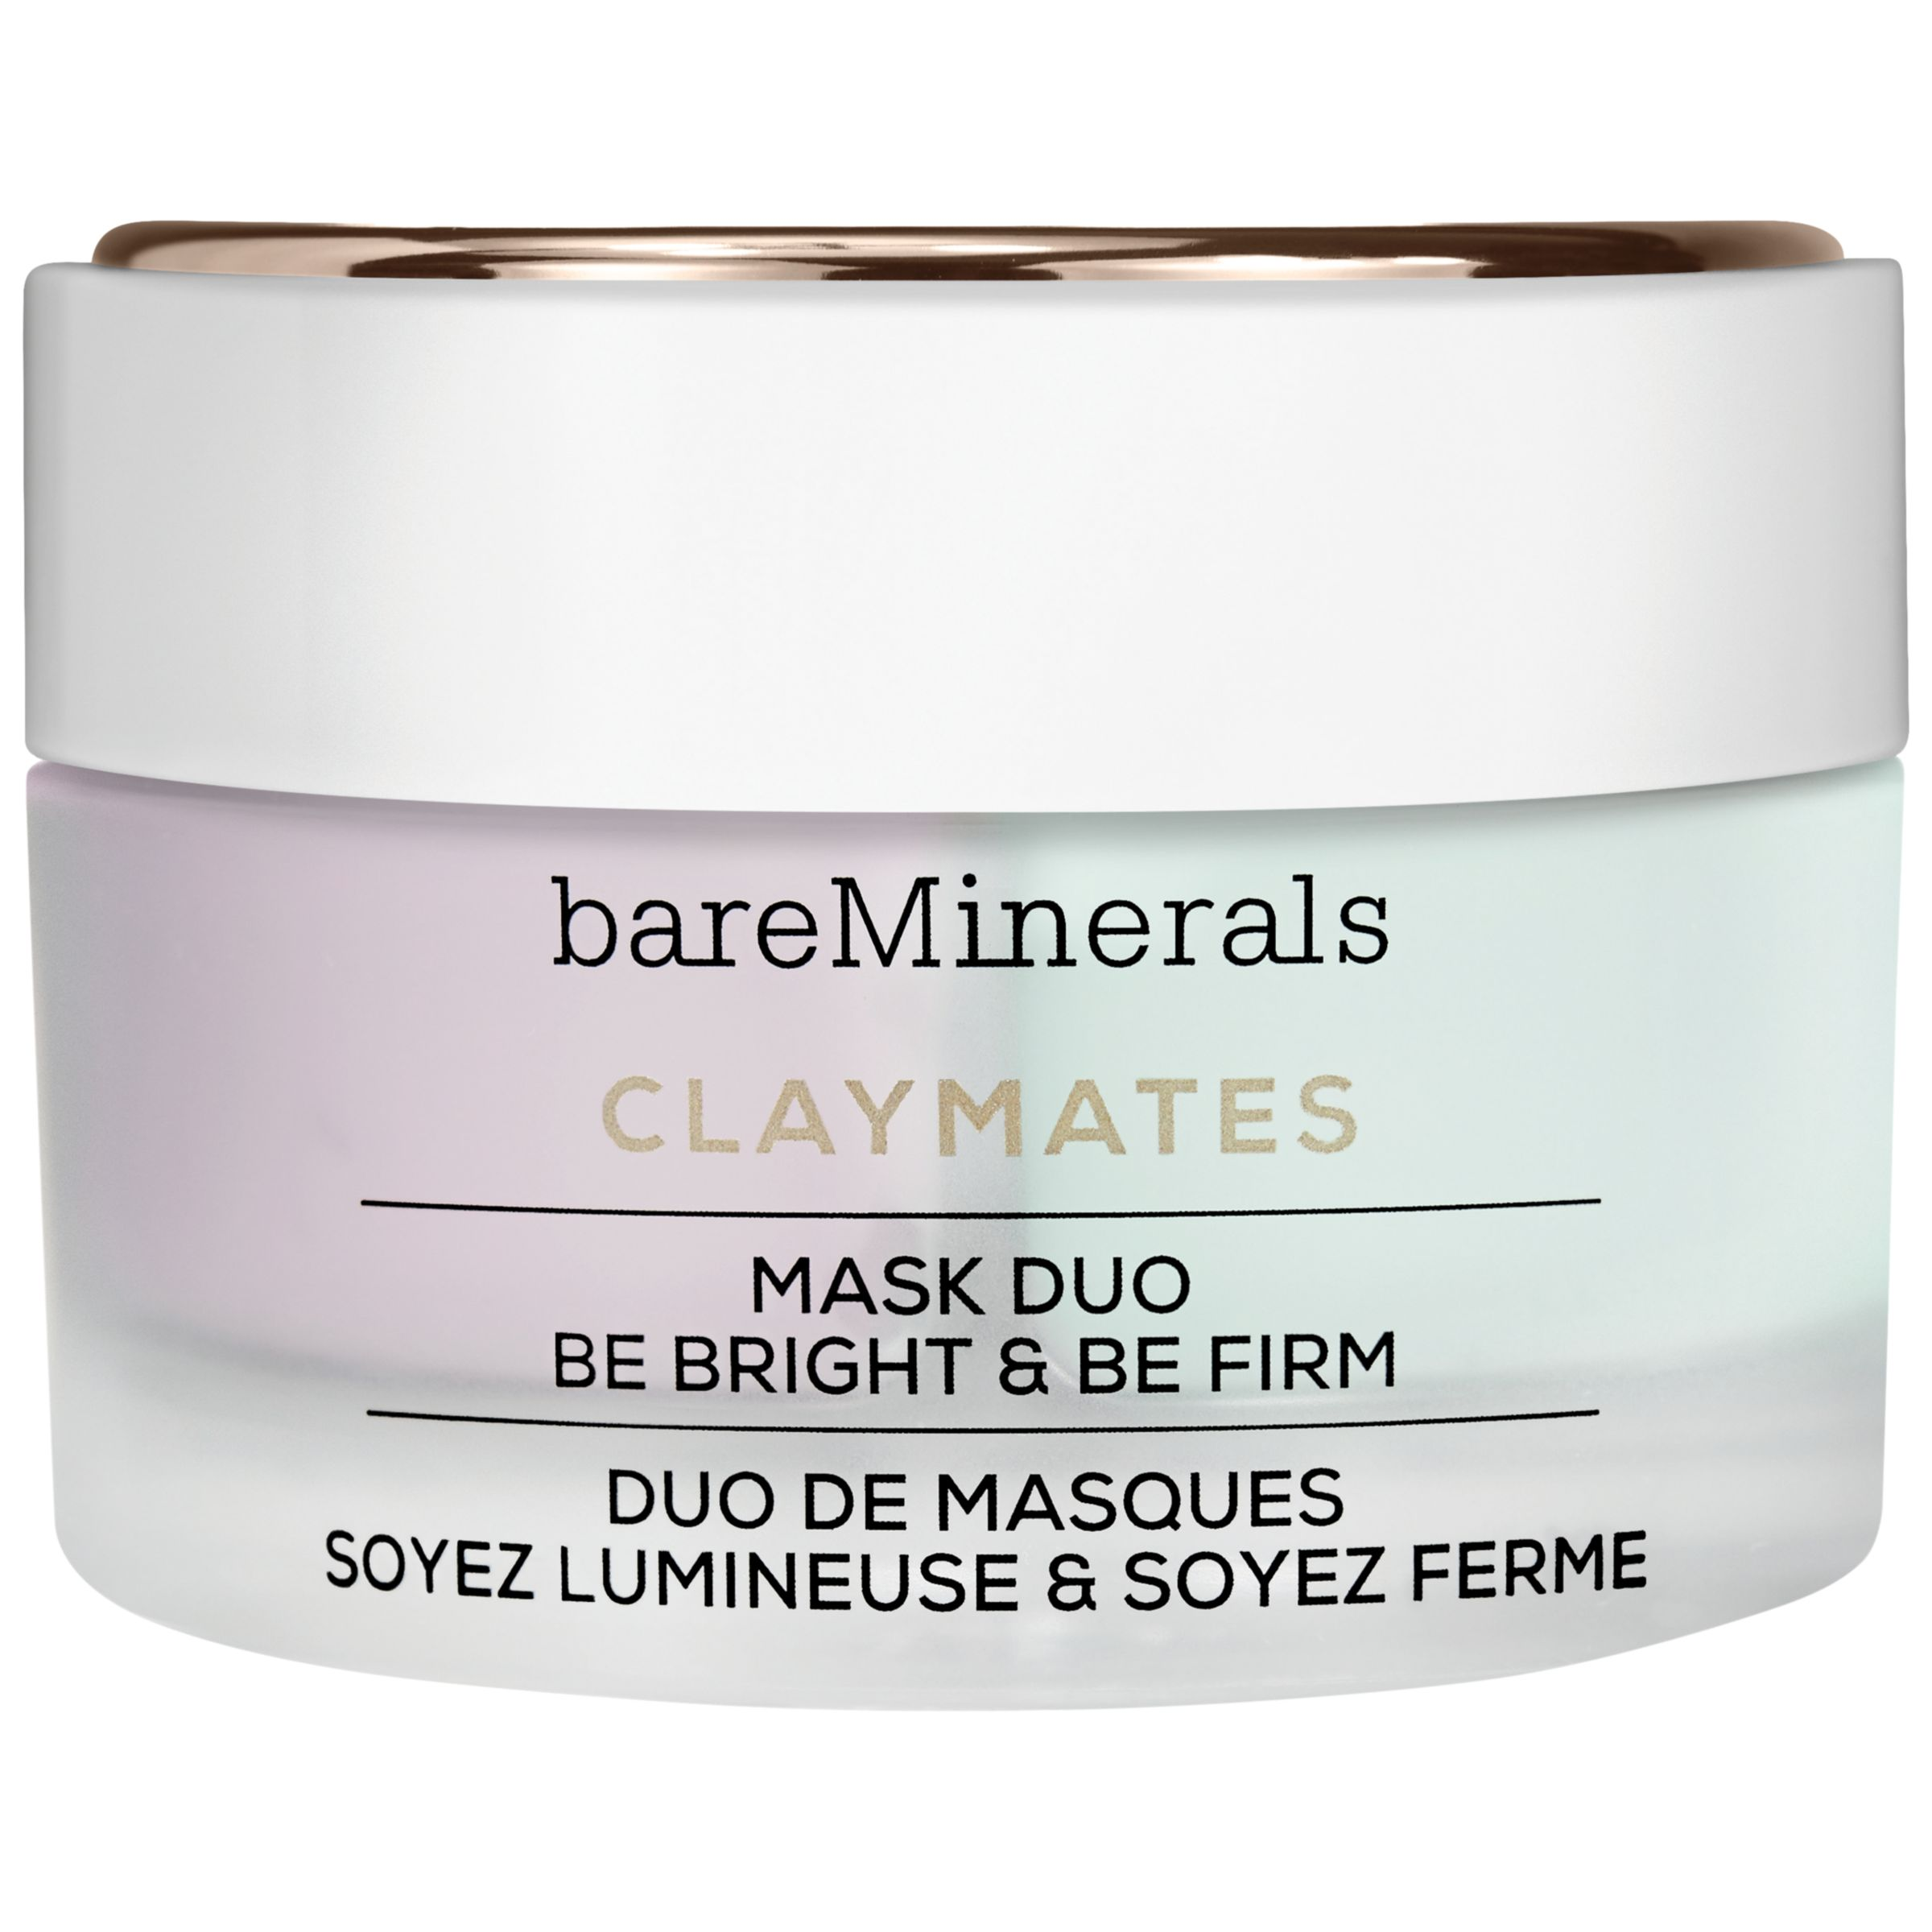 bareMinerals bareMinerals Claymates Mask Duo Be Bright & Be Firm, 58g